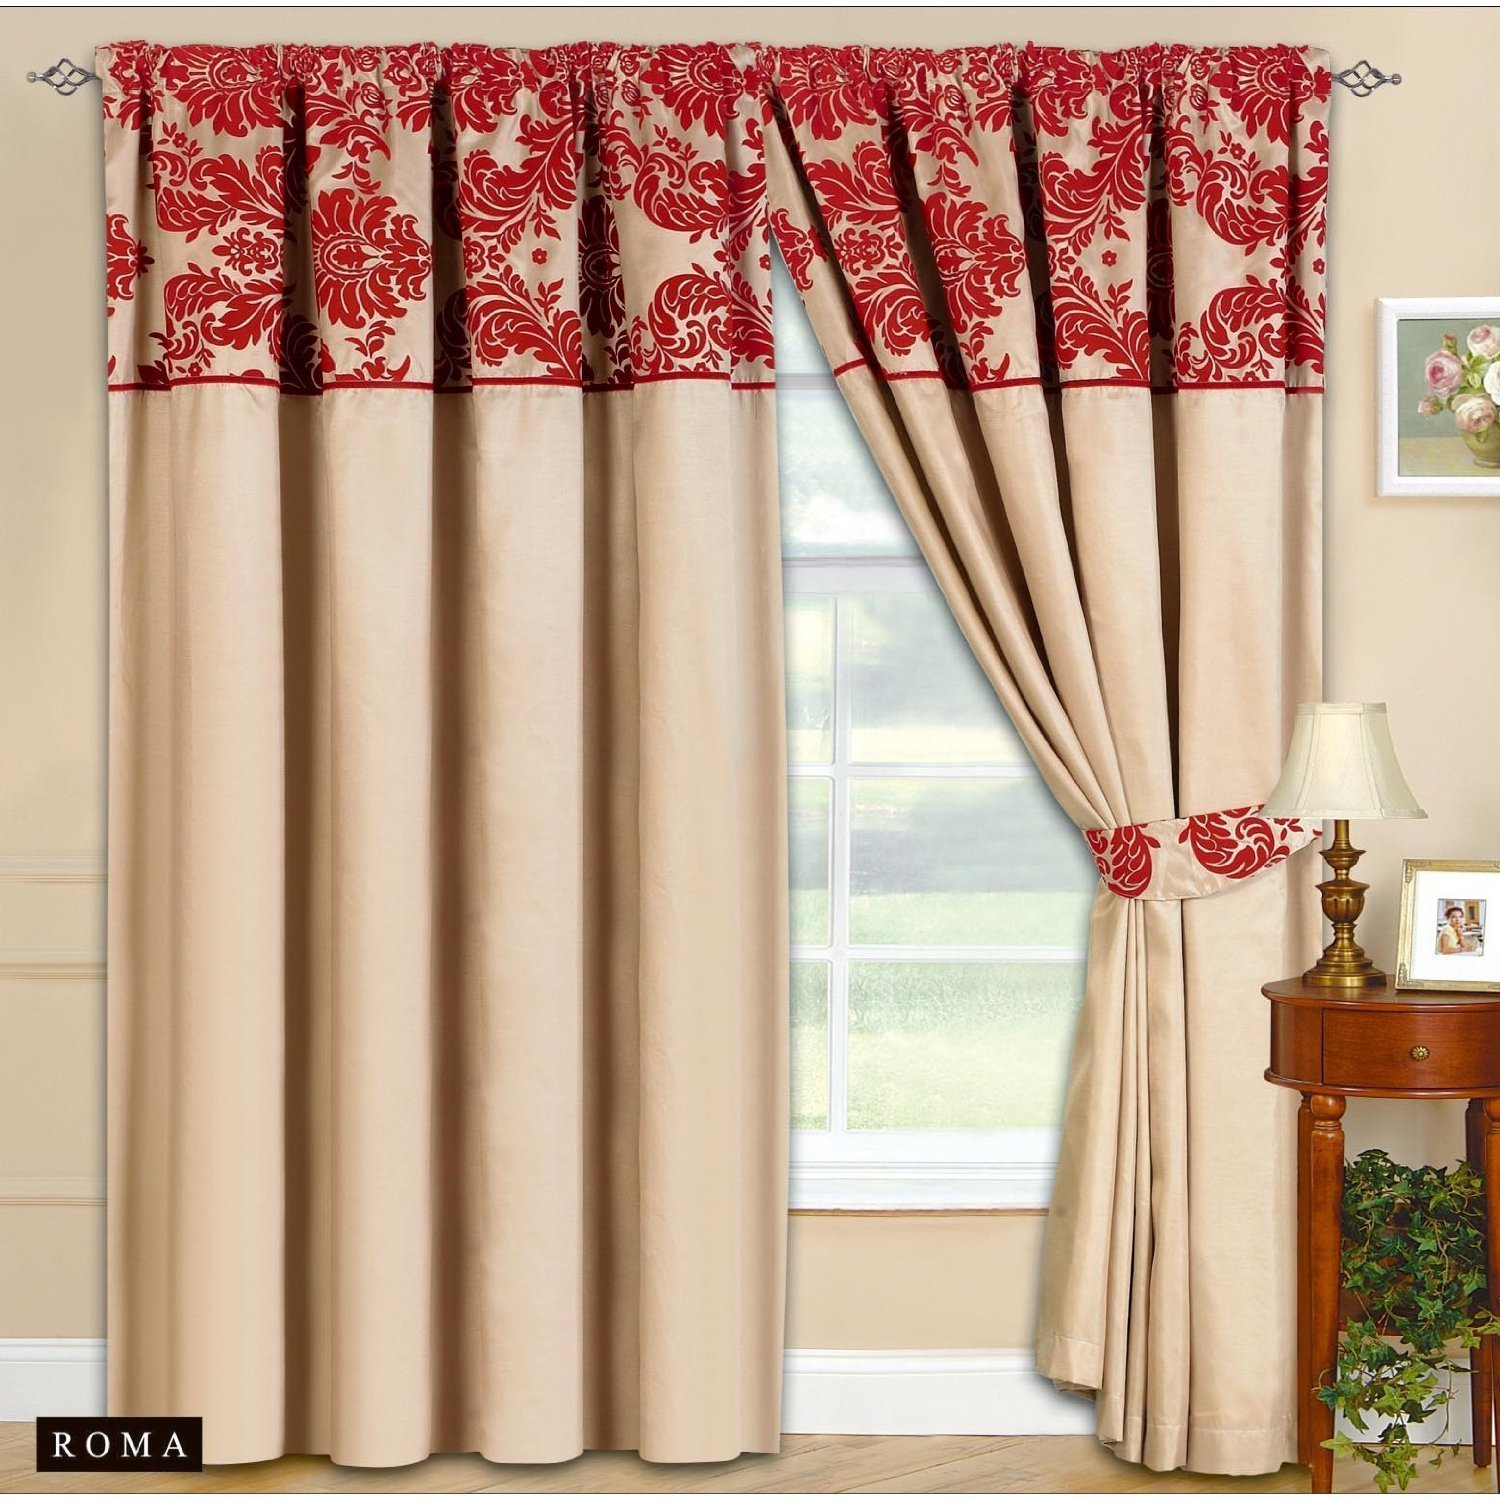 Curtains & Drapes: Accentuate the rooms in your home with curtains, which come in a variety of colors, styles, and lengths. Free Shipping on orders over $45 at sgmgqhay.gq - Your Online Window Treatments Store!